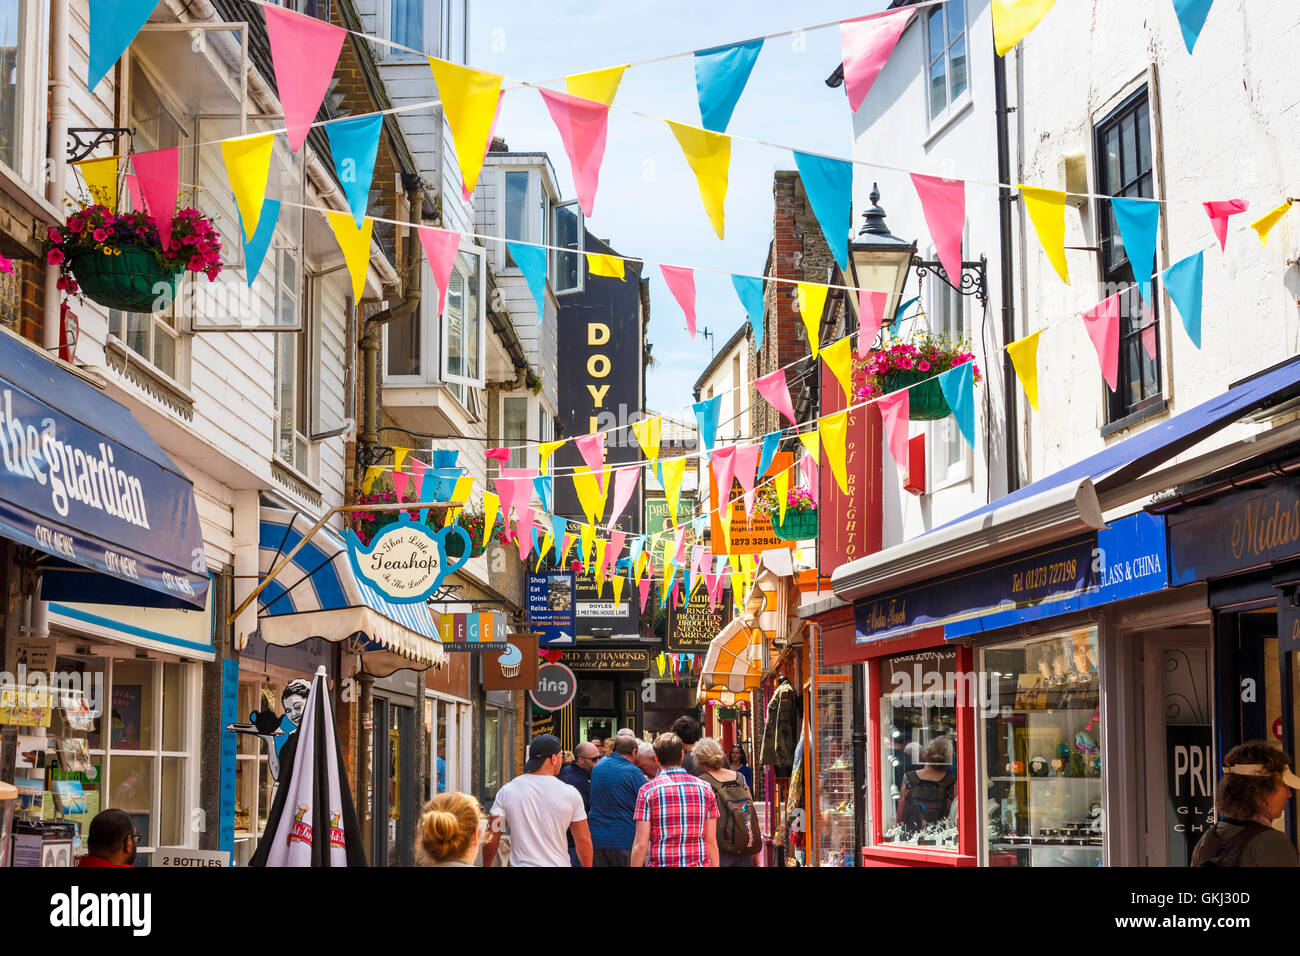 Street scene with colourful bunting and shop signs in The Lanes, Brighton, East Sussex, UK - Stock Image